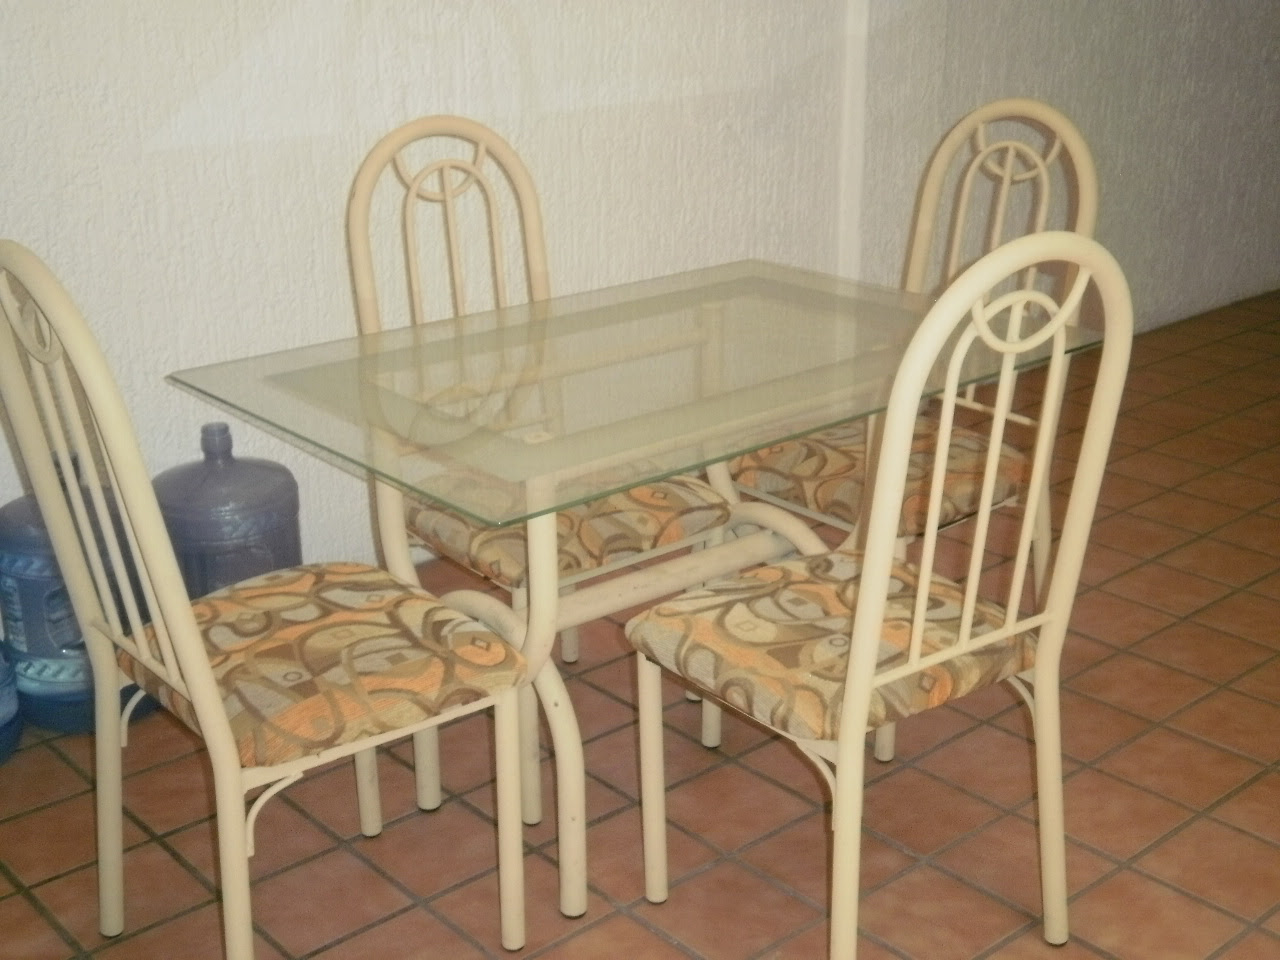 Dining Room Table And Chairs For Sale Uag Medical School Classifieds